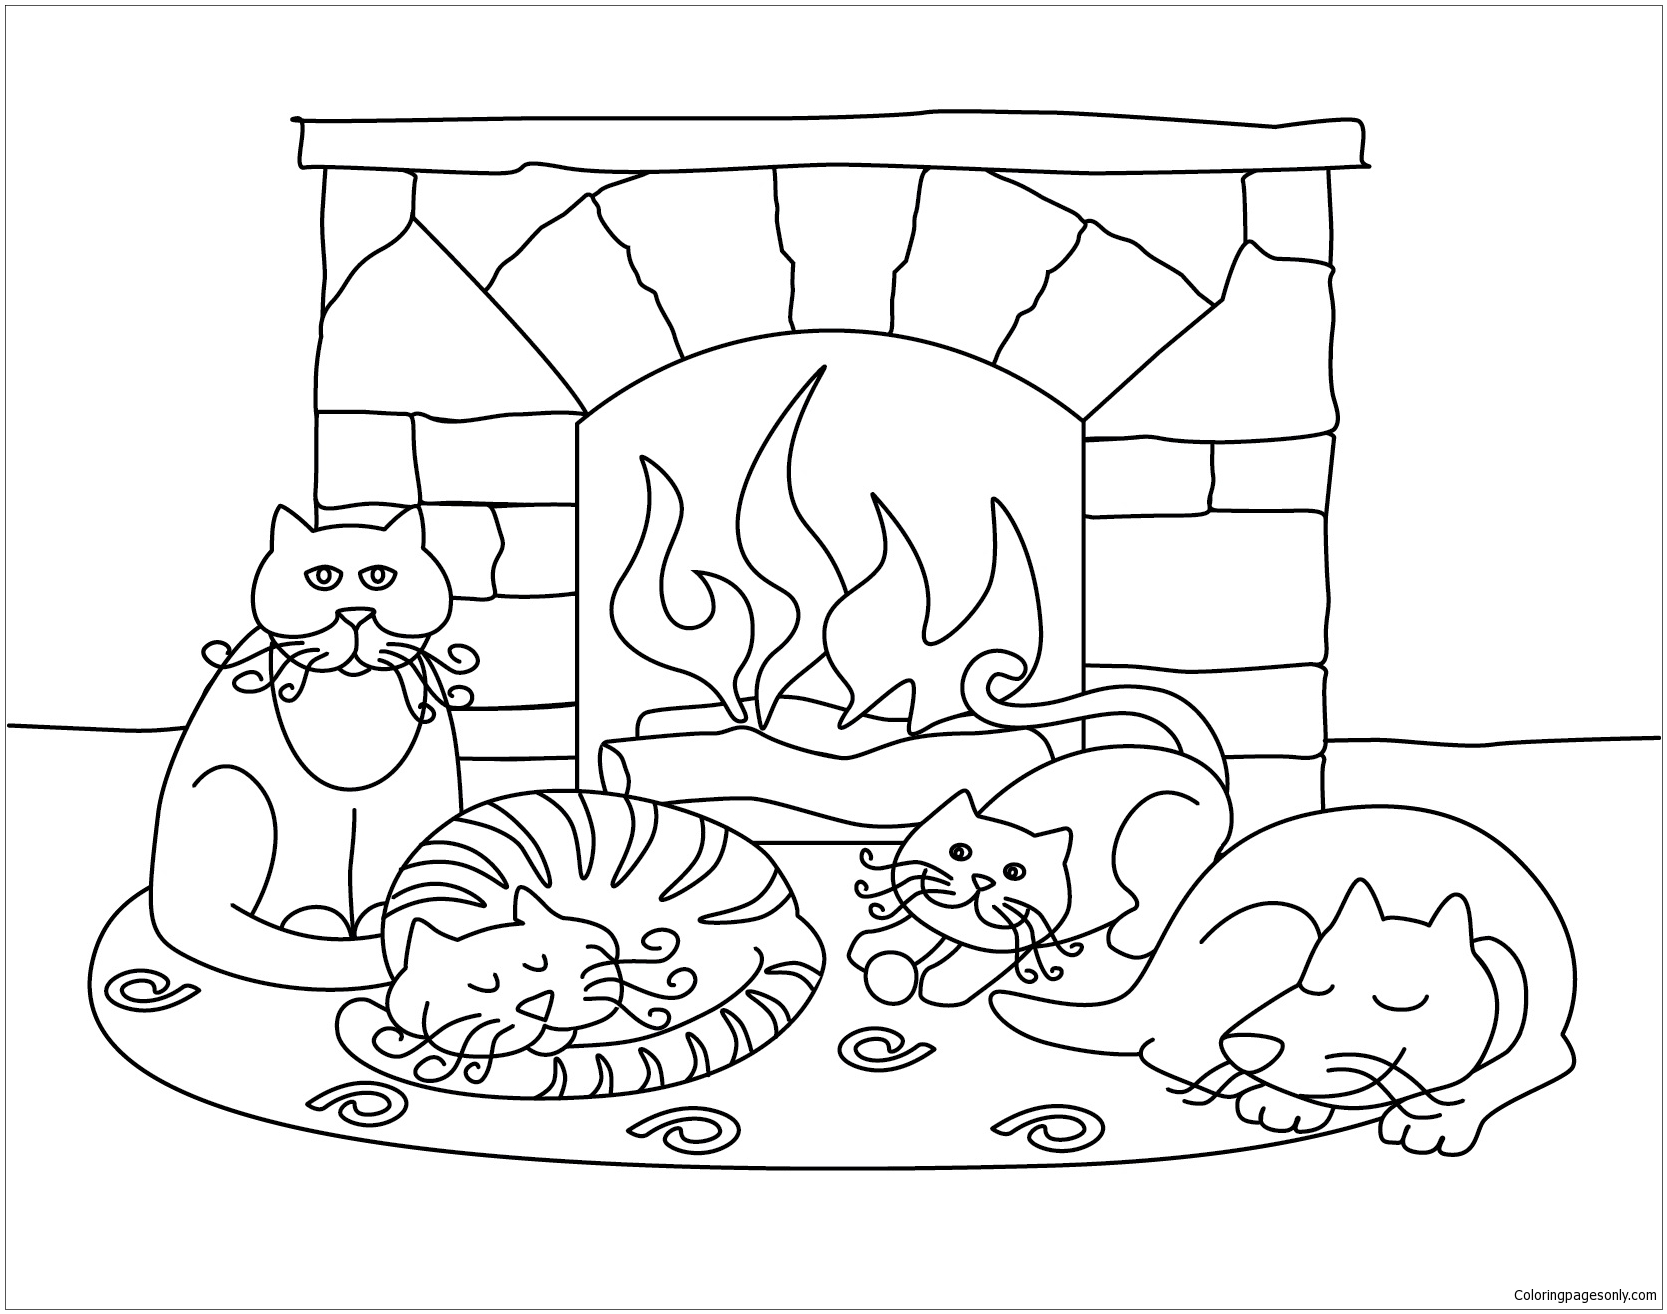 winter scenes with cute animals coloring page free